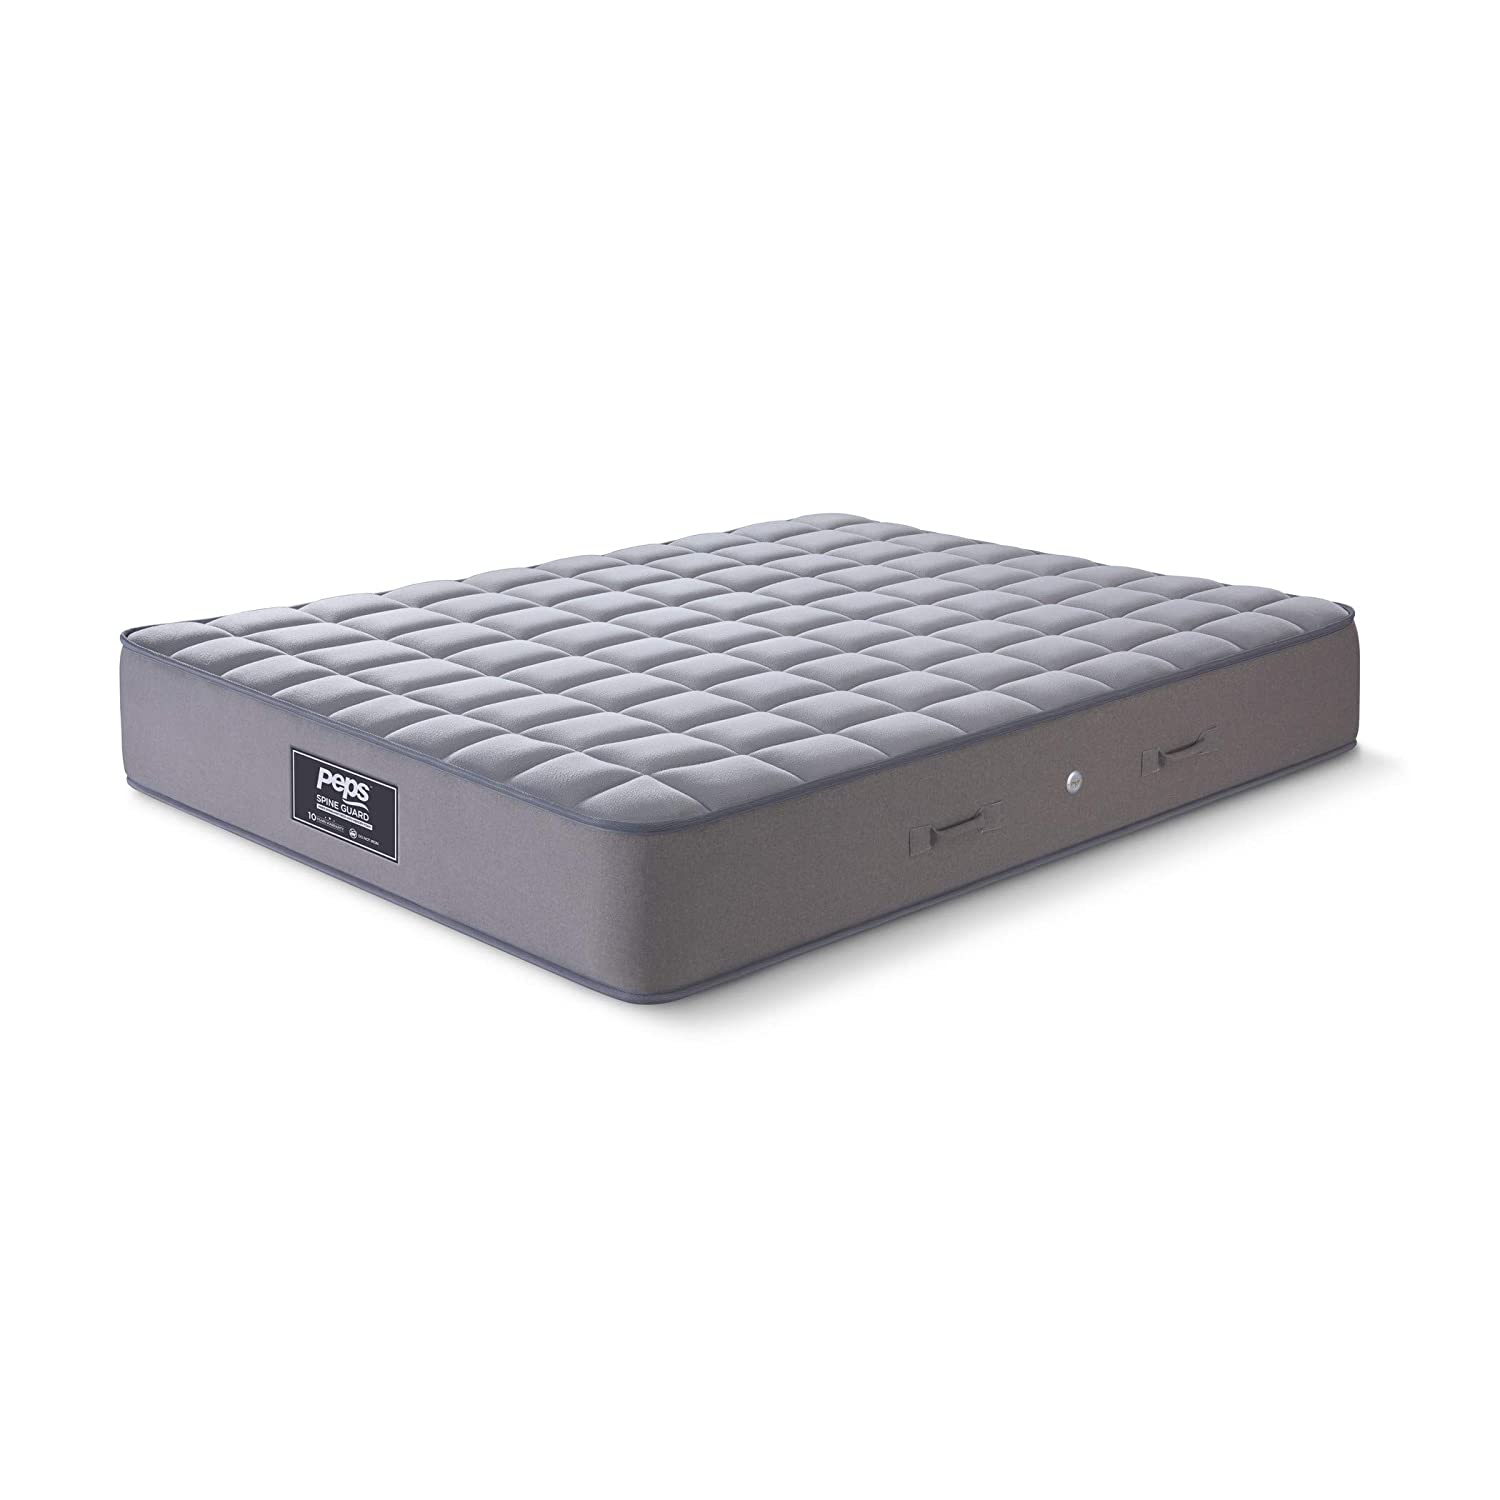 Peps Spine Guard 6-inch Single Size Spring Mattress (Grey, 72x36x06)